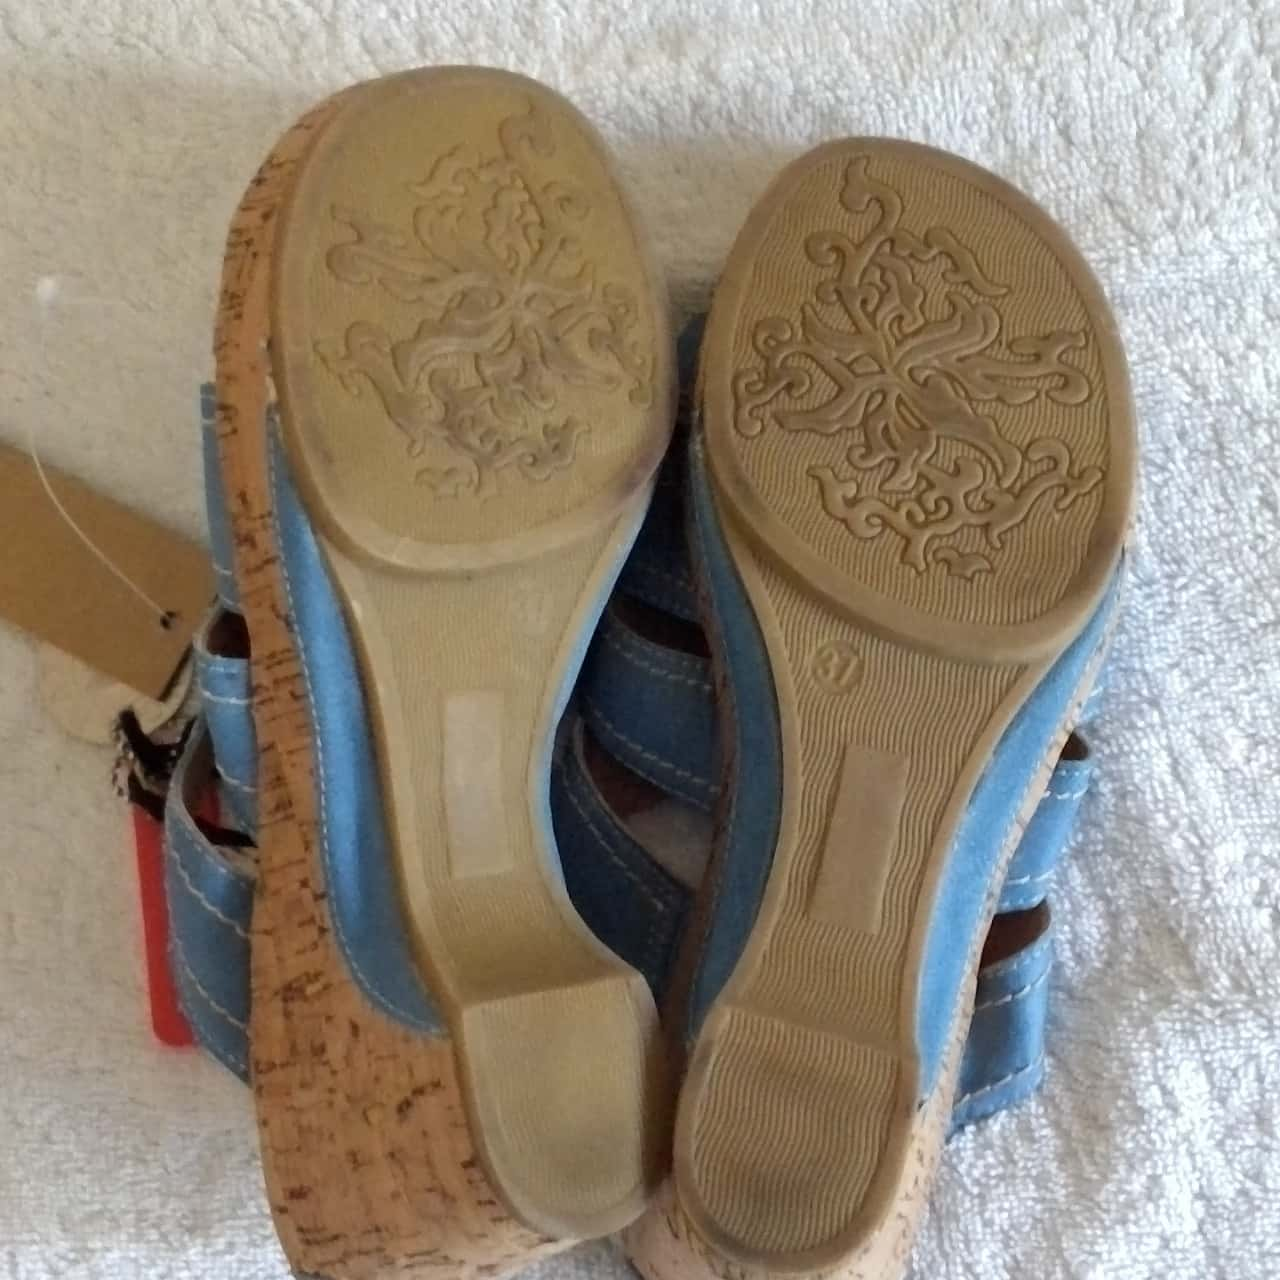 BNWT Womens RIVERS SOFT CORK HEELS  Size 6 Blue/Brown RRP $39.95